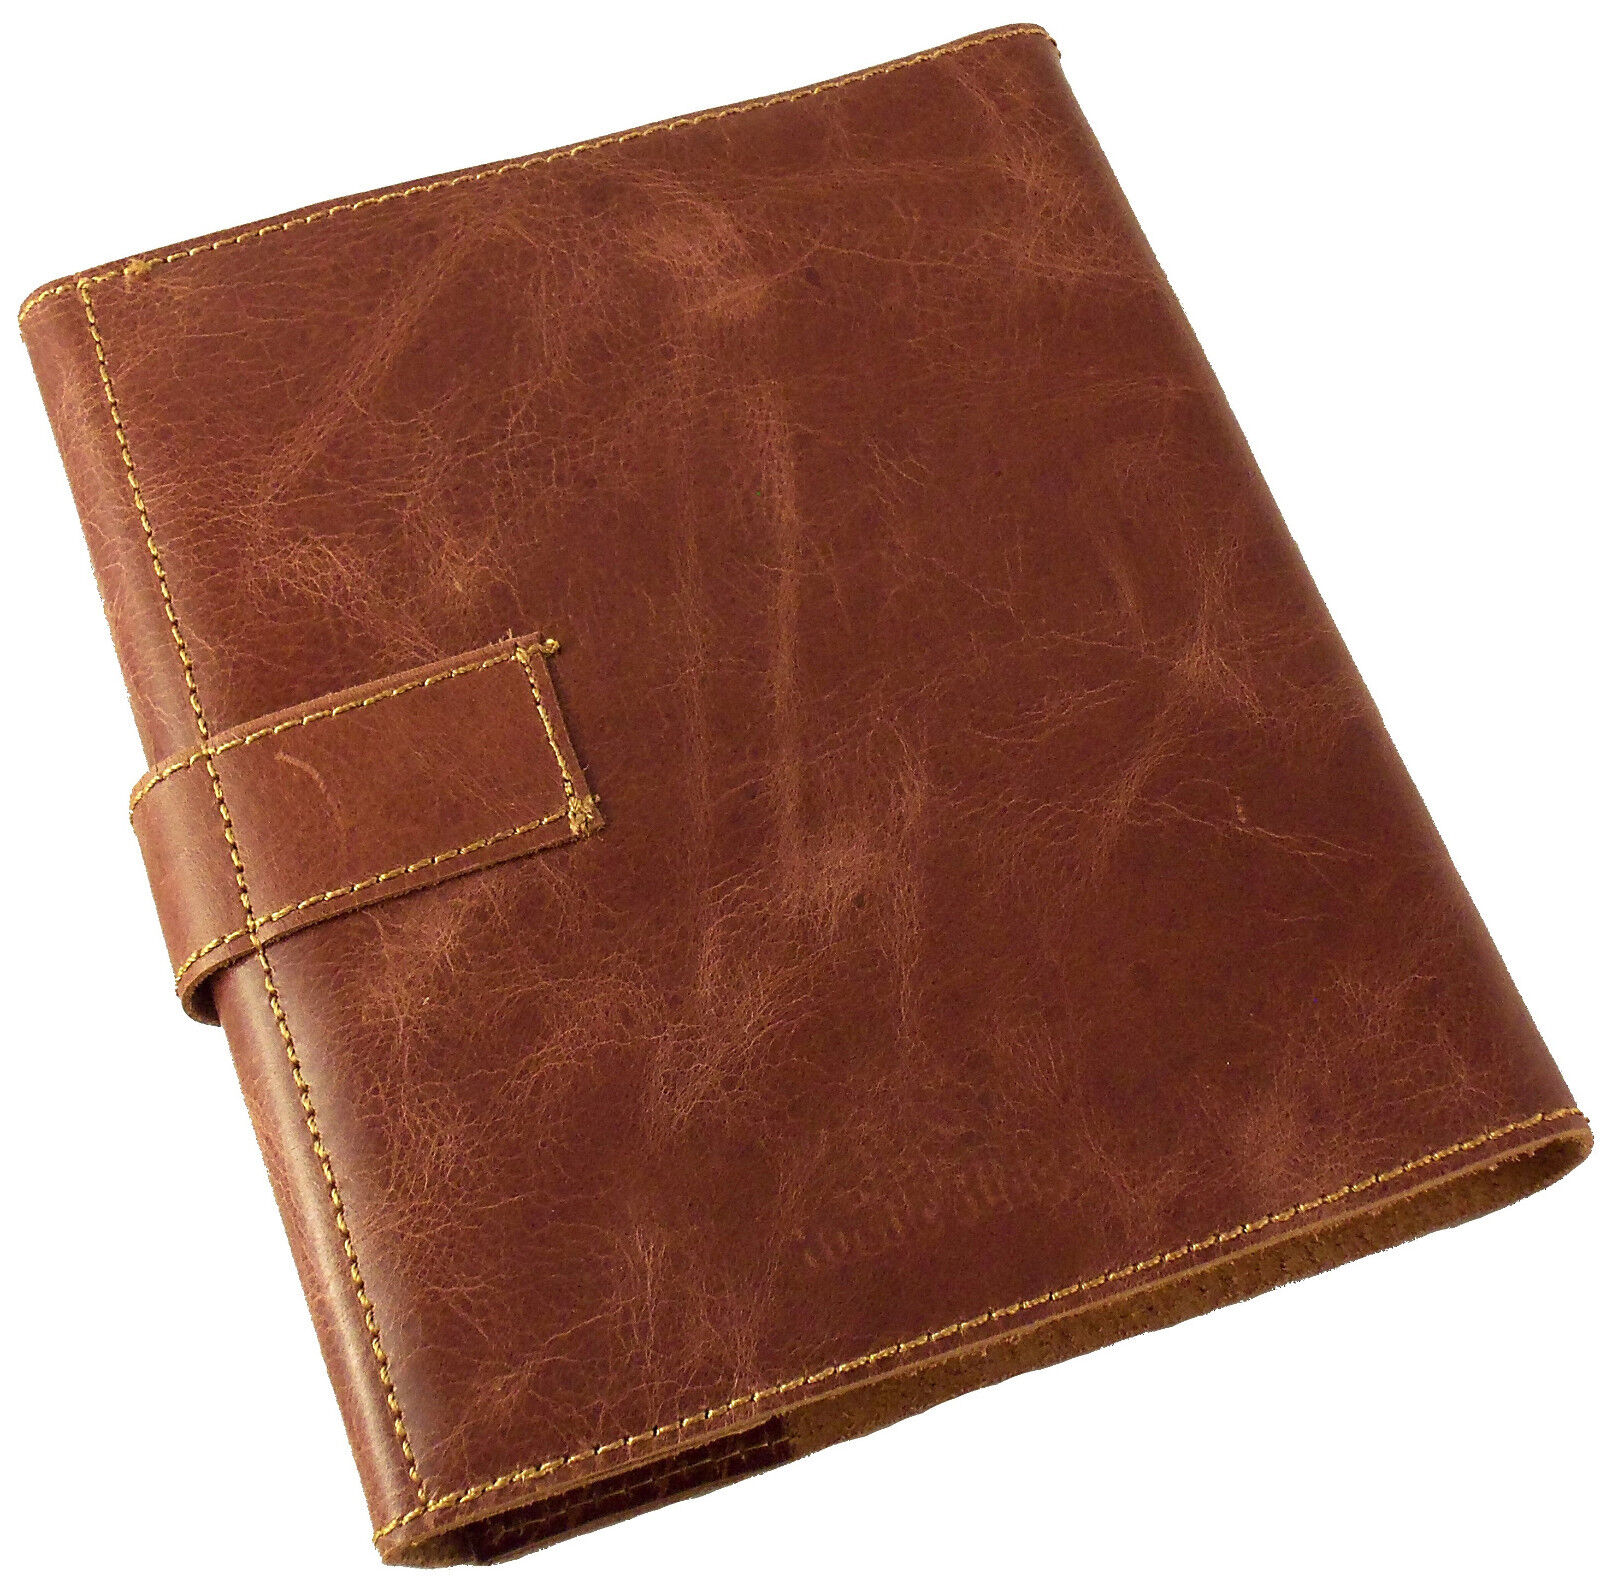 Refillable Leather Journal Sketchbook Travel Notebook Blank Diary Vintage Rustic 5